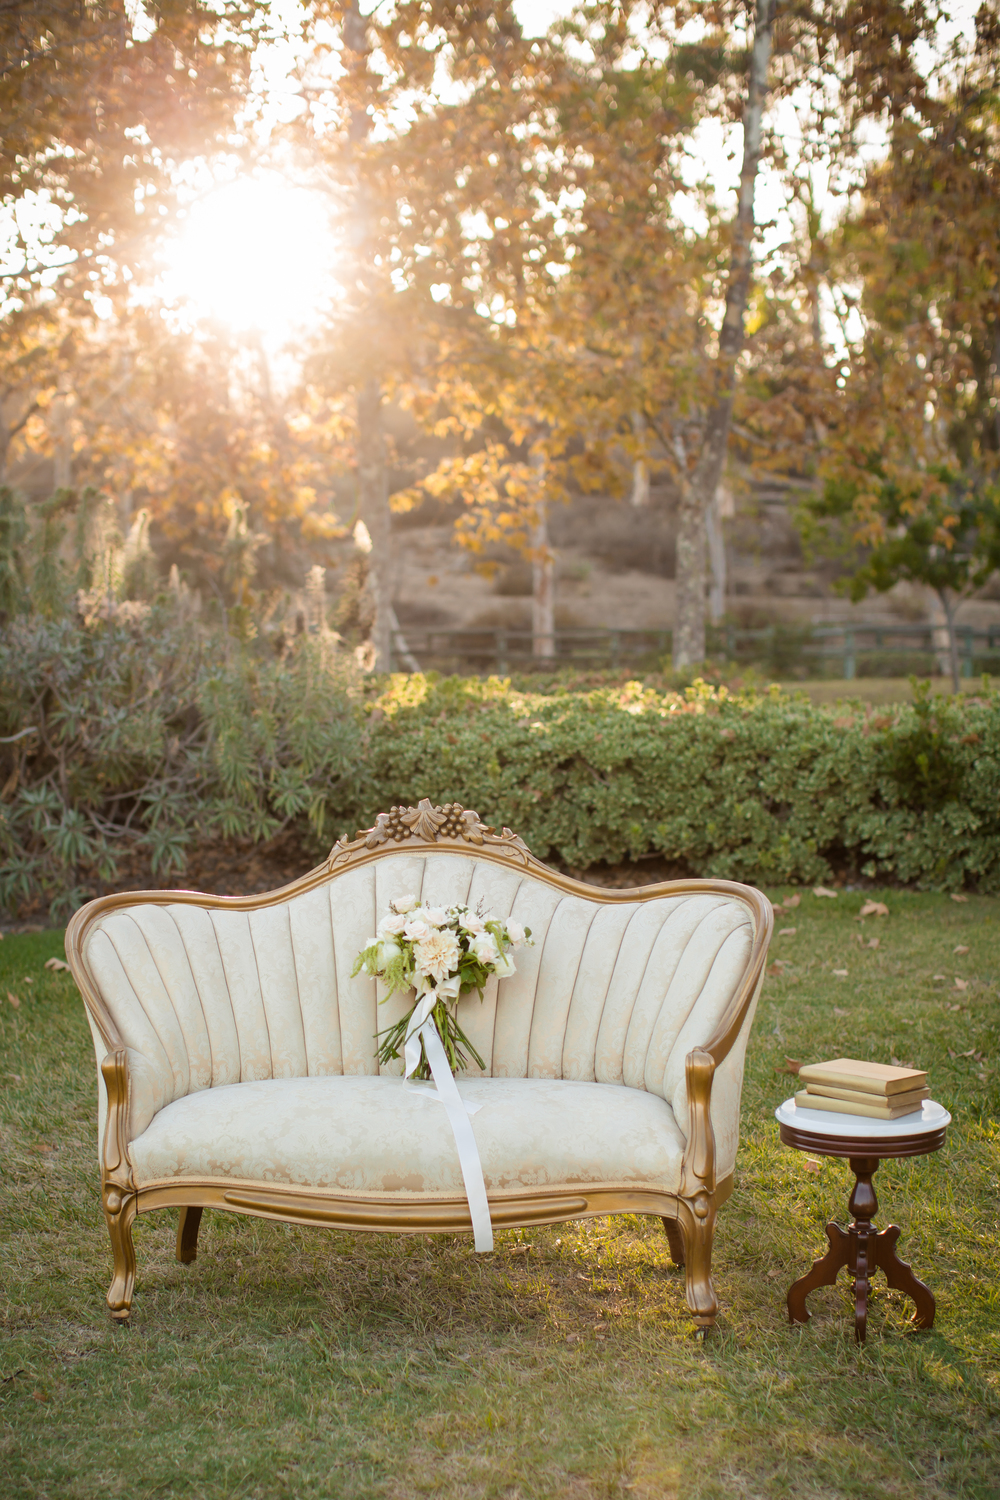 Southern California Vintage Chic Wedding and Event Rentals | Party Pieces by Perry